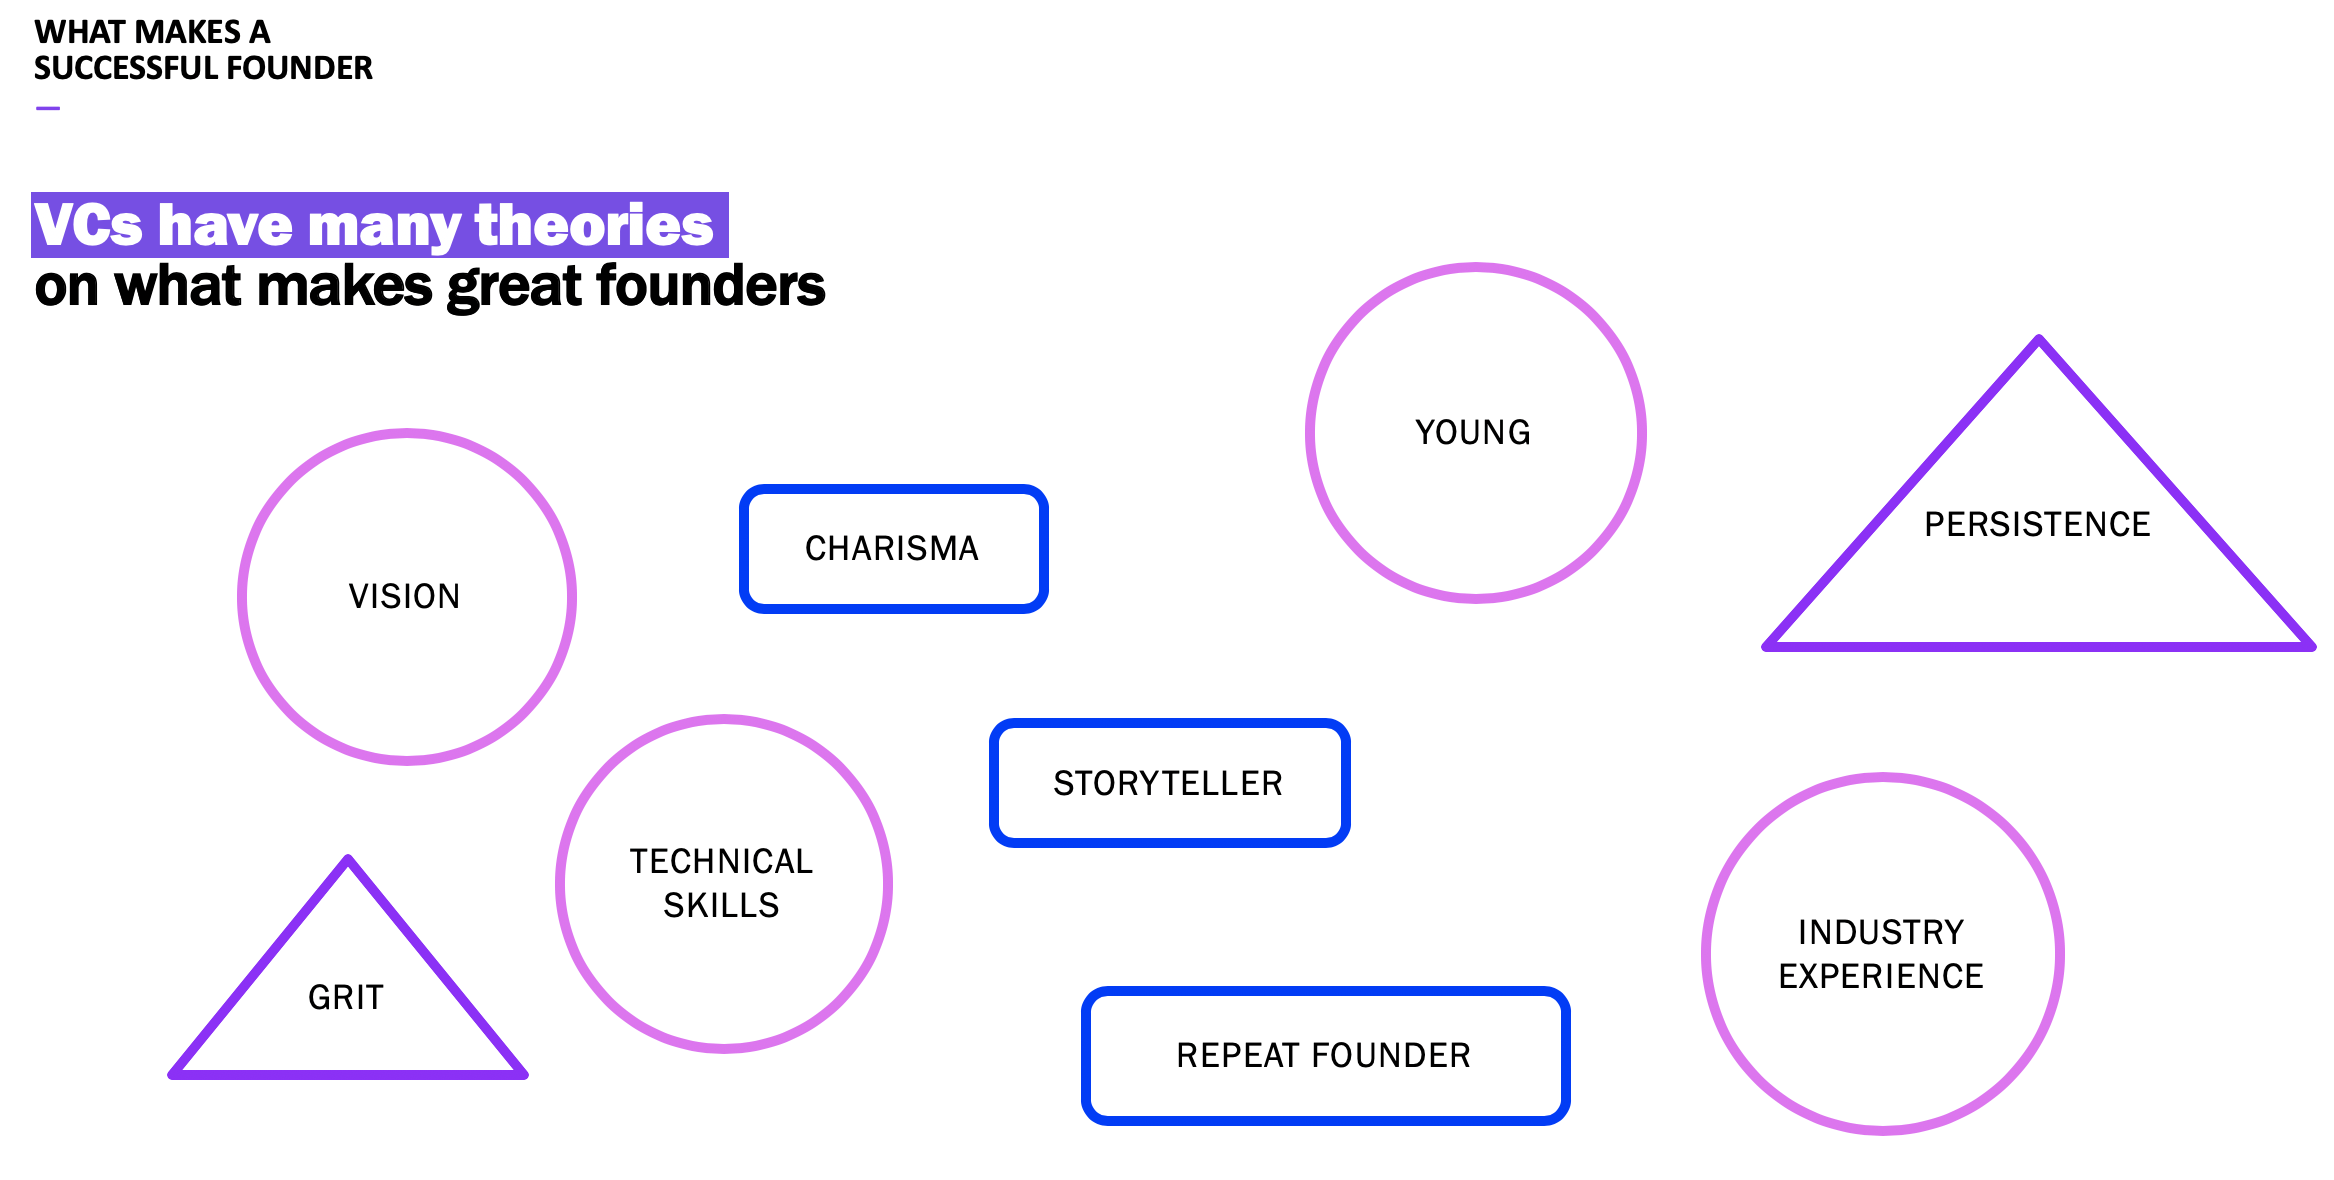 What Makes A Succesful Founder